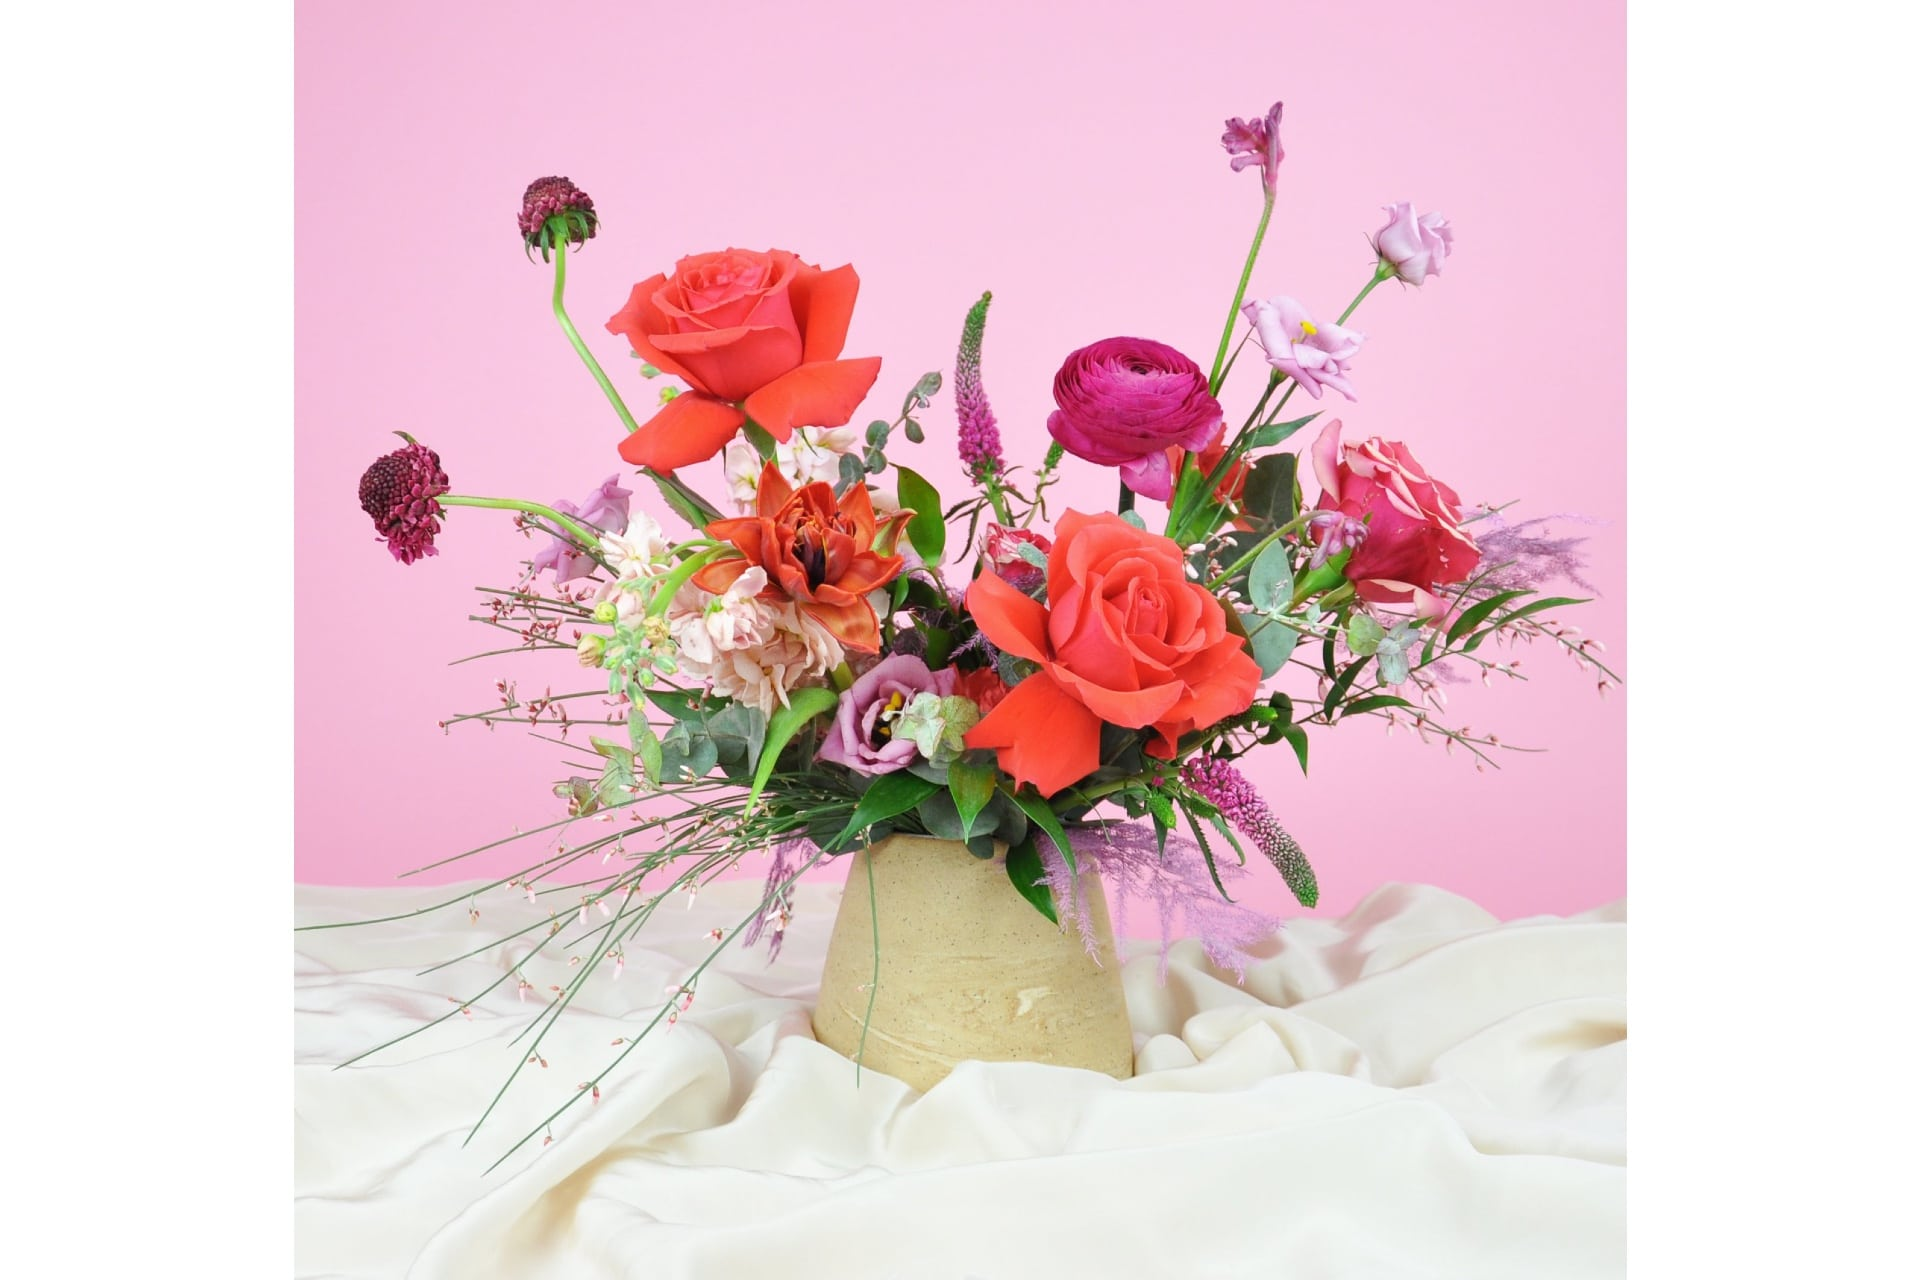 beautiful floral arrangement on a pink background